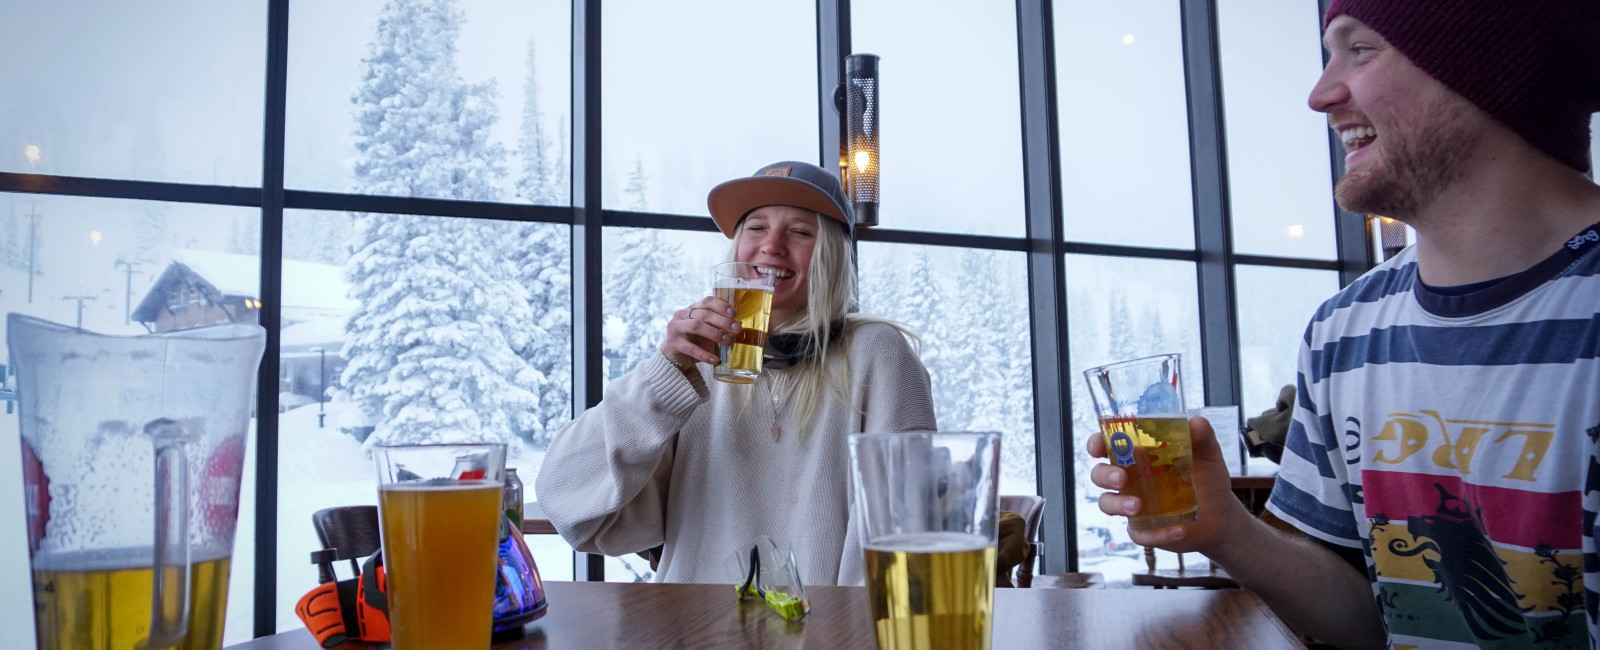 The 7 Habits of Skiers: Communication via Après-ski